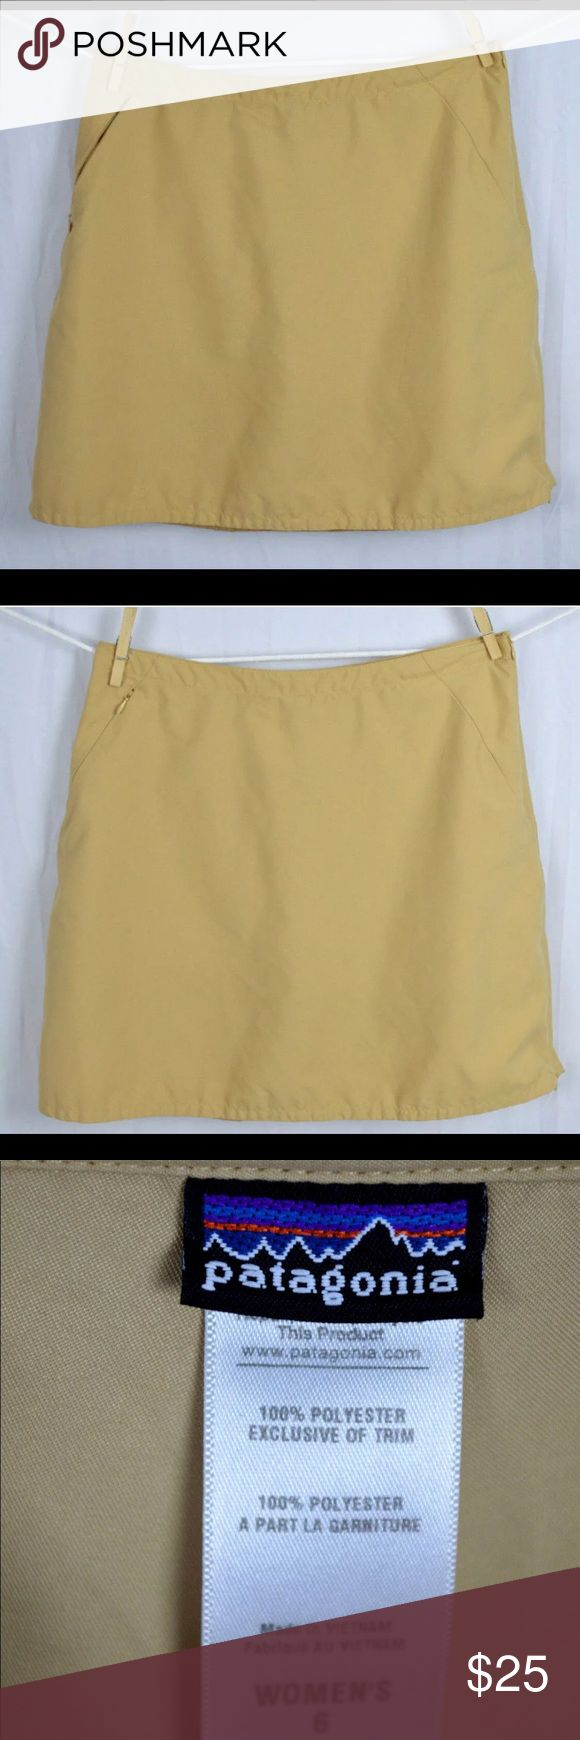 """Women's beige hiking skort from Patagonia. Size 6 An excellent used condition women's beige hiking skort from Patagonia. Size 6 with a side zip and one zip pocket.  This Patagonia skort works well on those occasions when you need a skirt but desire the modesty of shorts.  Dimensions:-  Length:- 17.25"""" Waist:- 15""""  Thanks for viewing! Patagonia Shorts Skorts"""